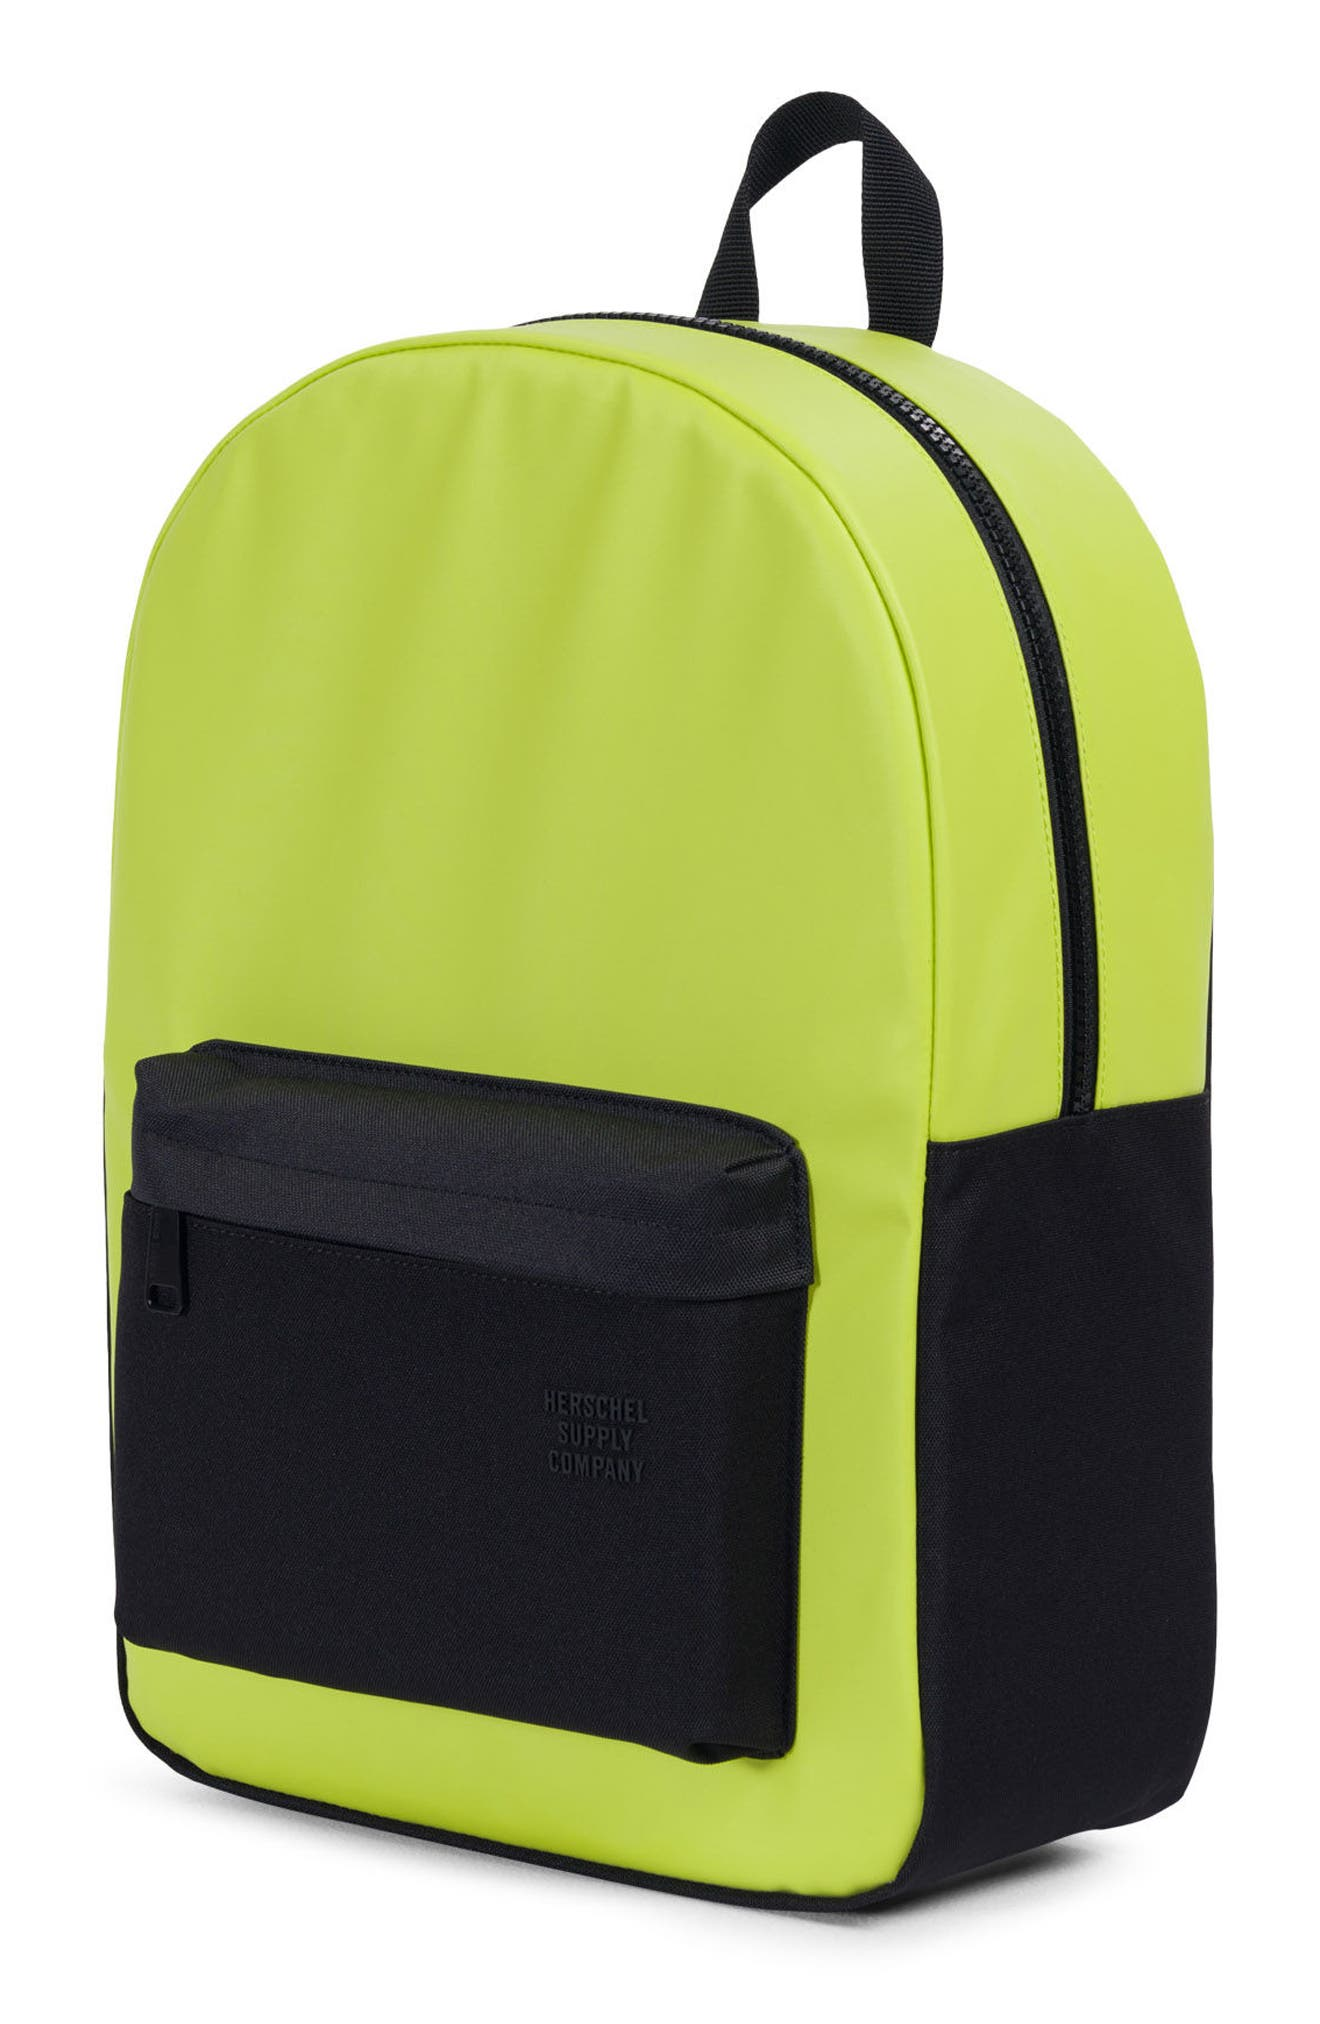 Winlaw Polycoat Studio Backpack,                             Alternate thumbnail 6, color,